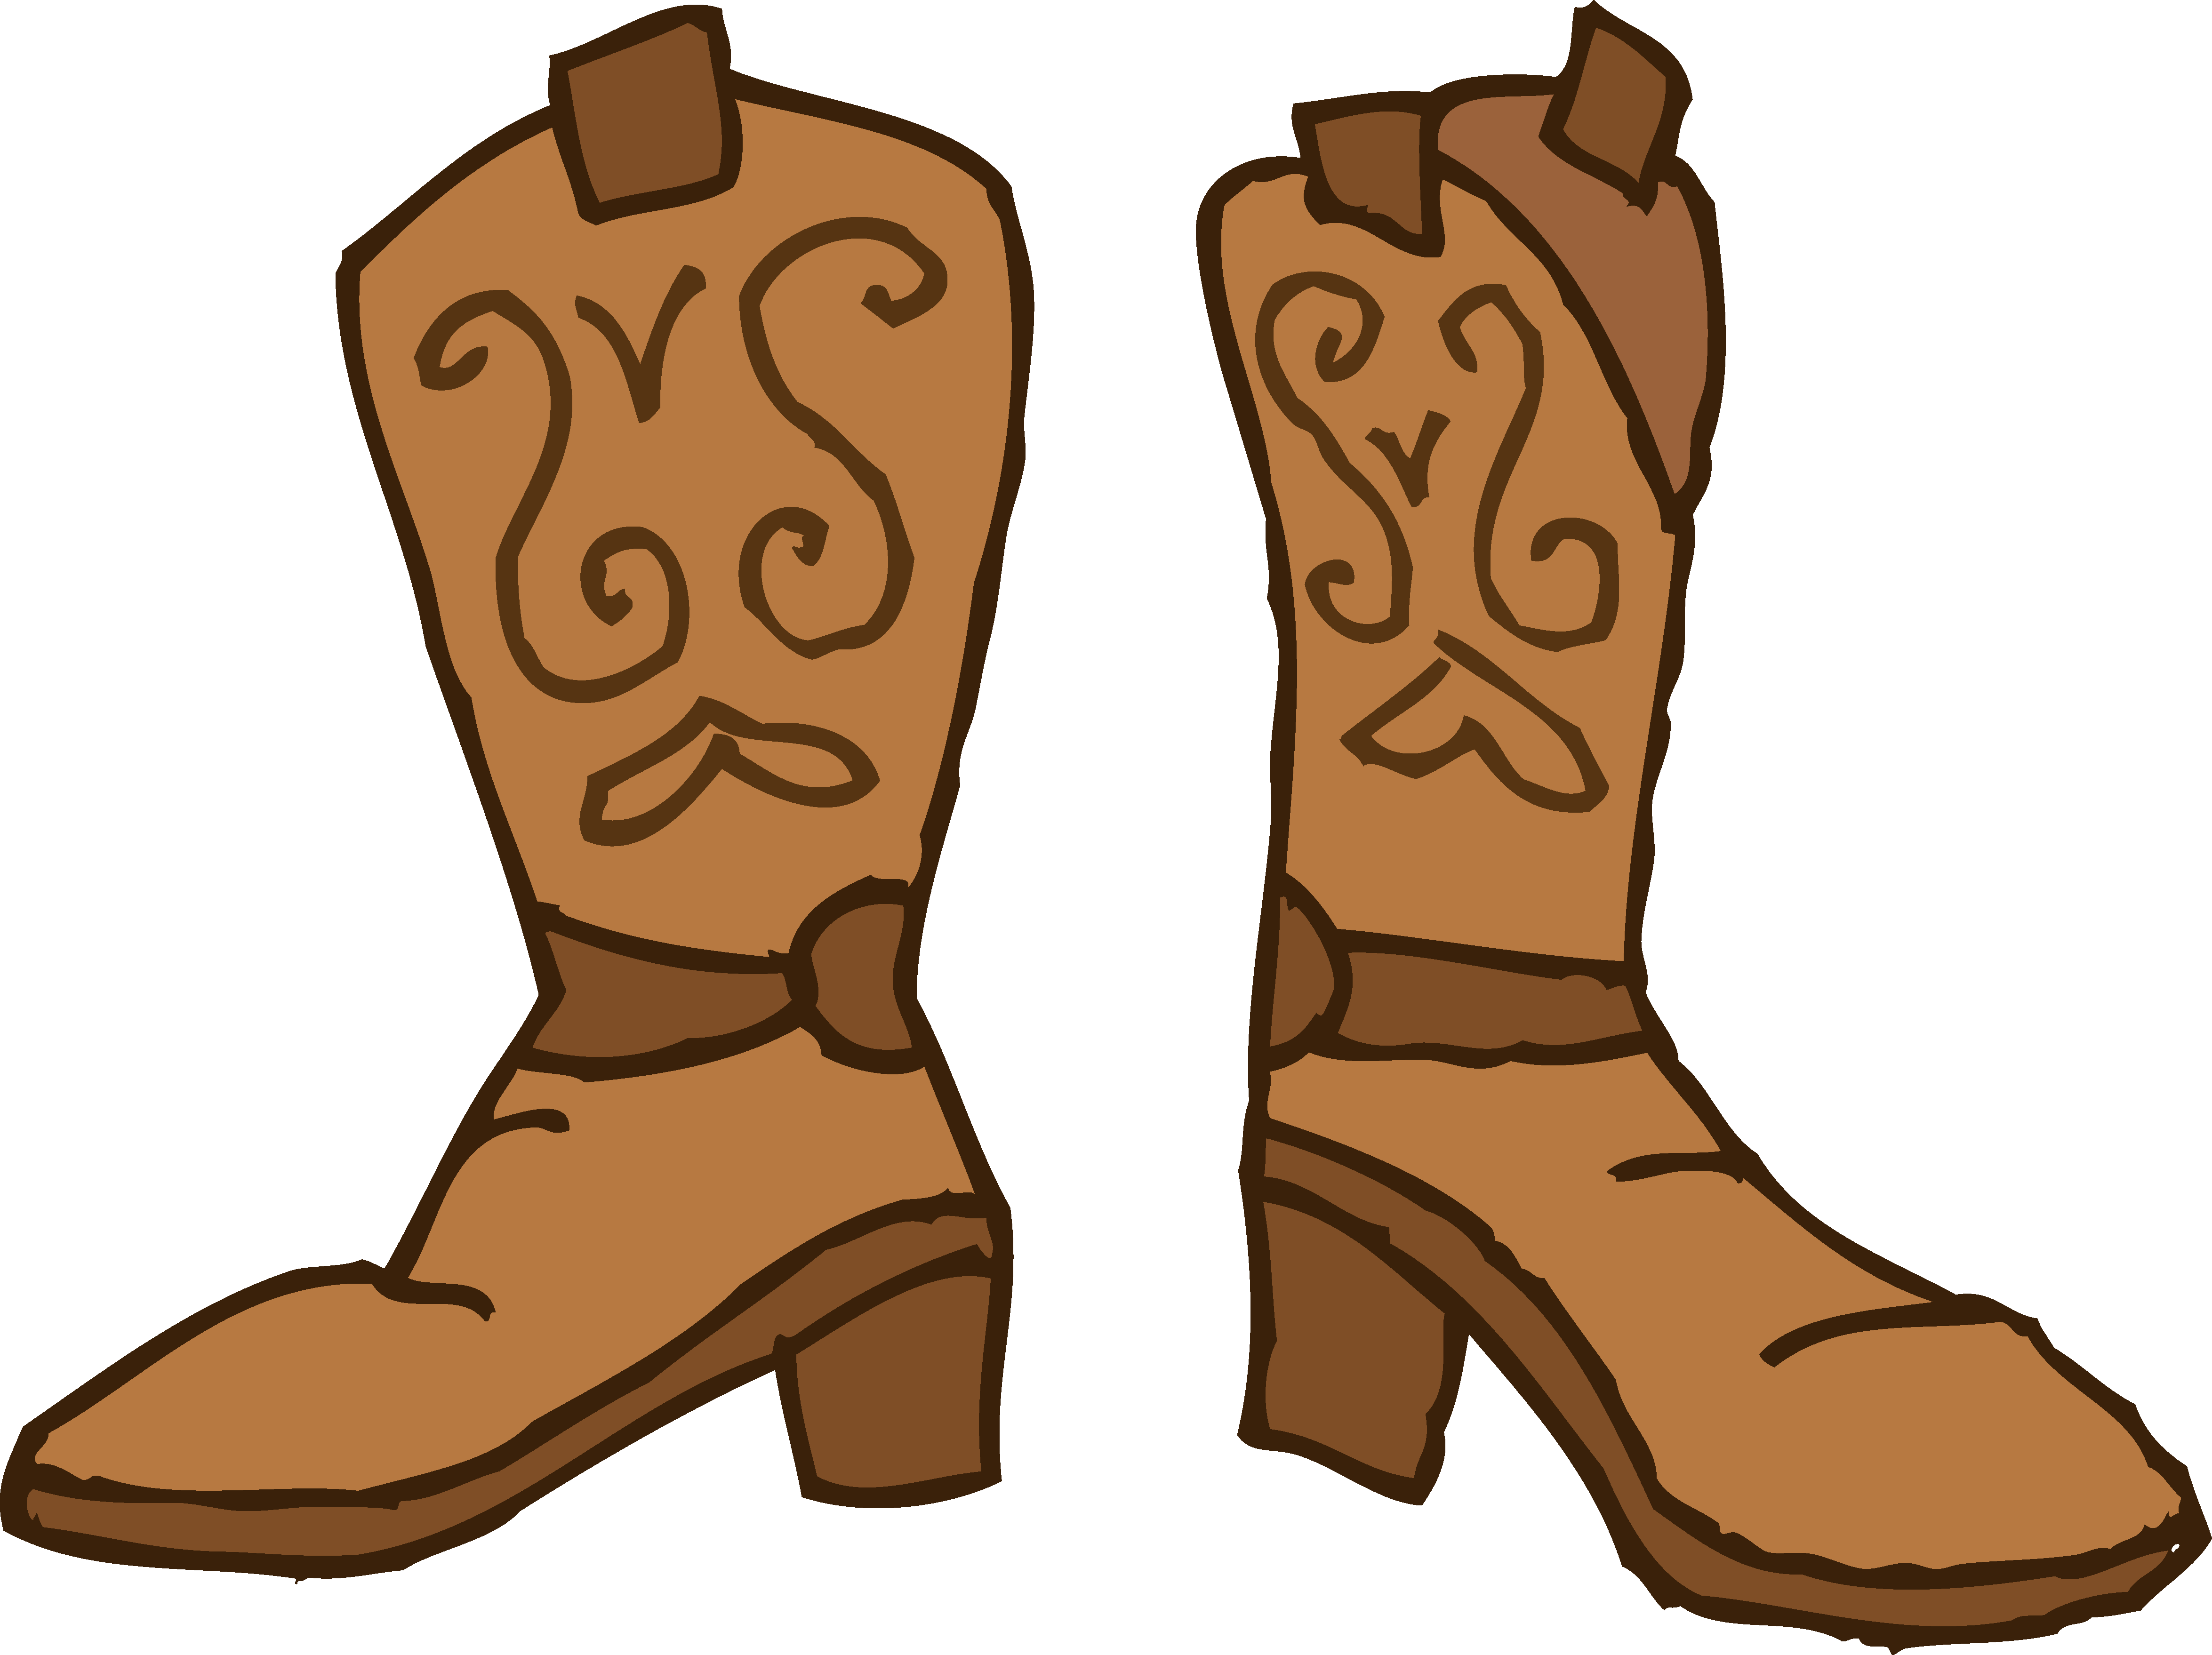 Cowboys boots clipart with crown vector free stock 28+ Collection of Cartoon Cowboy Boots Clipart | High quality, free ... vector free stock